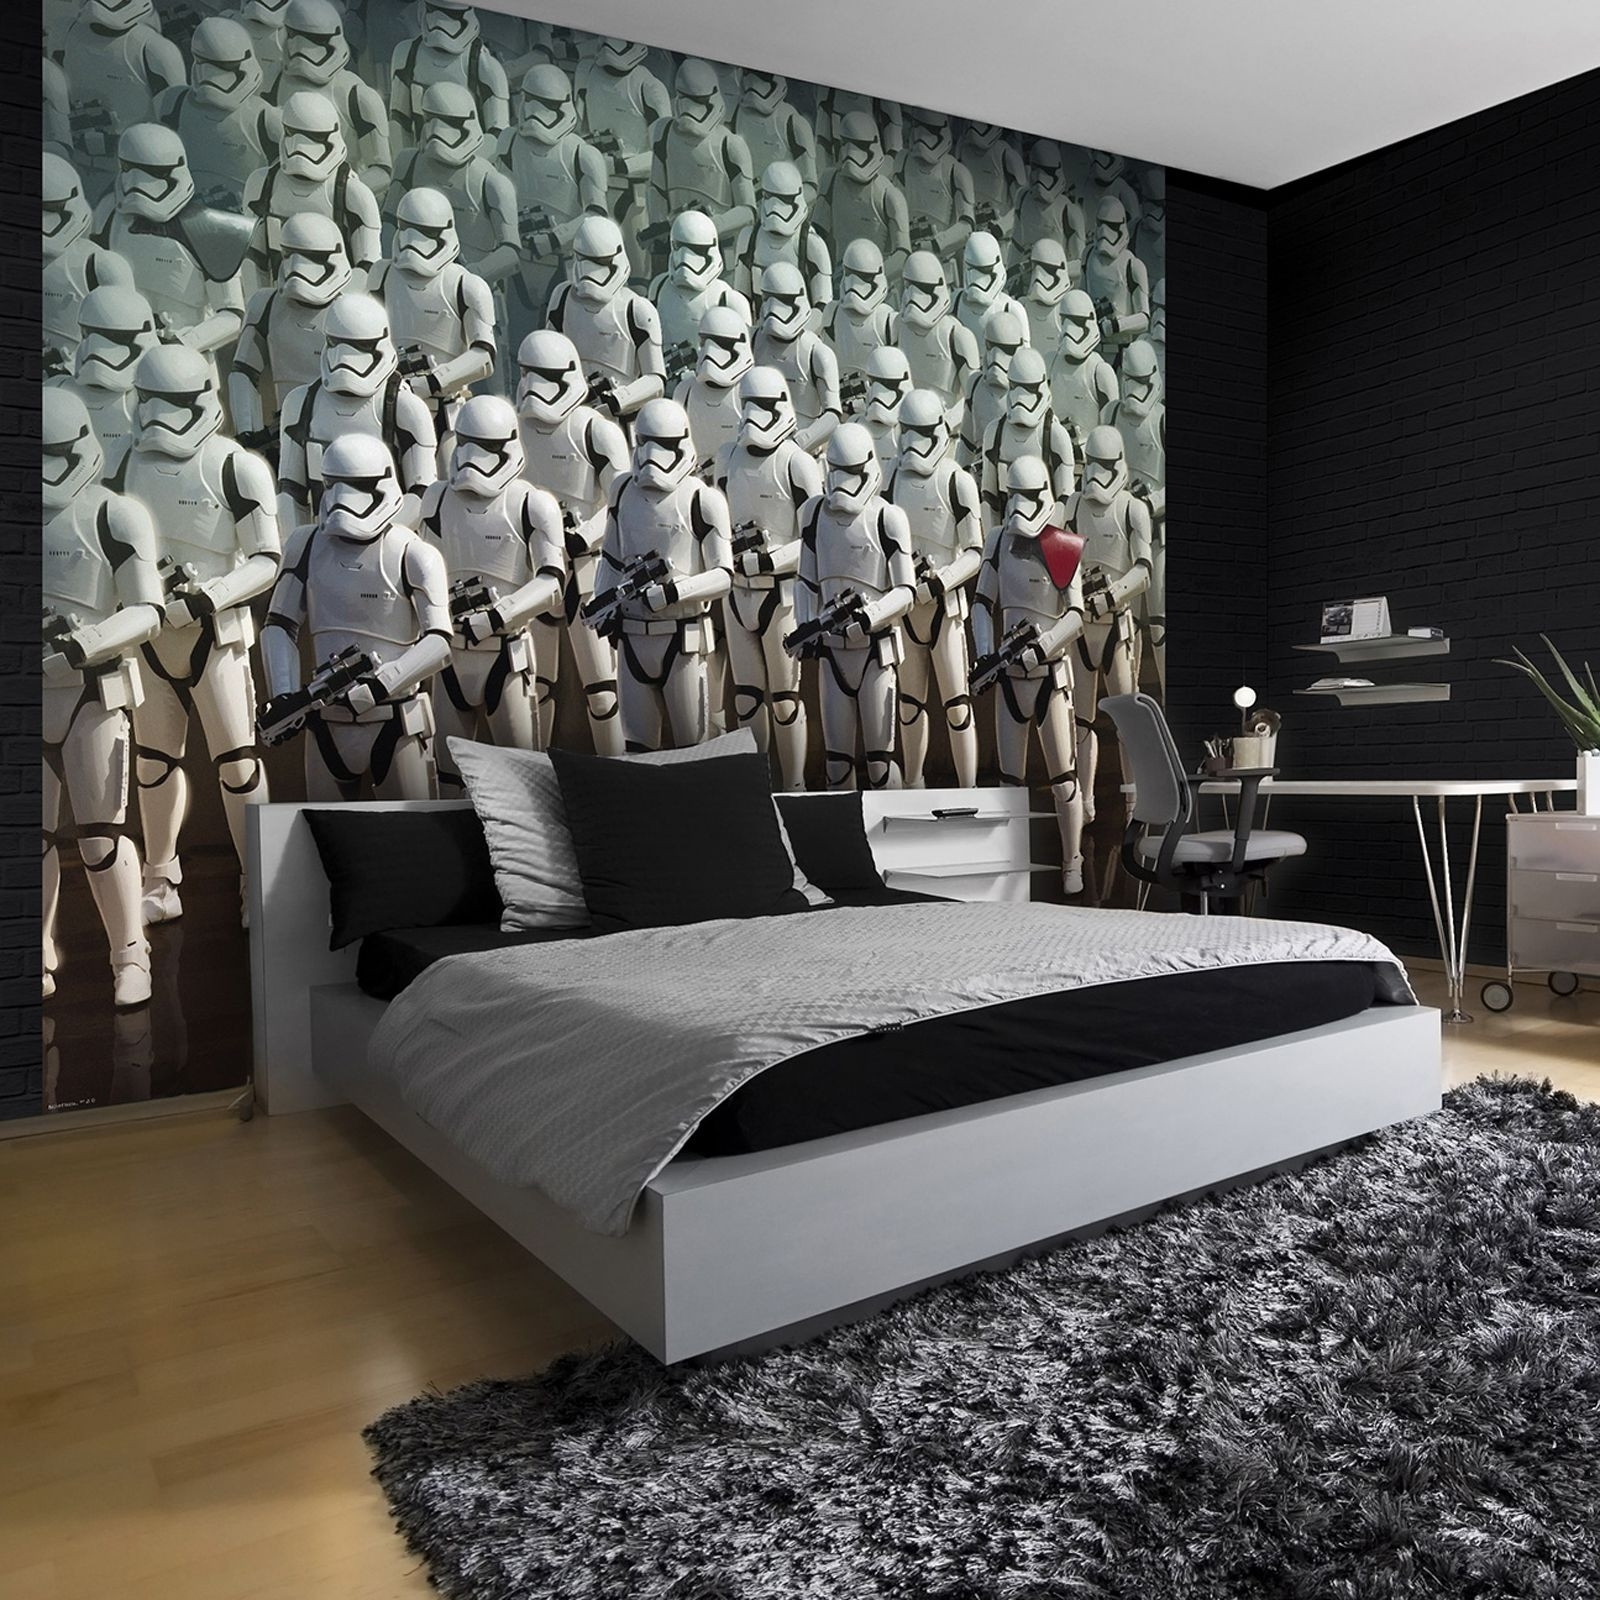 Popular Star Wars Wall Art With Regard To Star Wars Wall Art Bedroom : Andrews Living Arts – Fantastic Room (View 5 of 15)